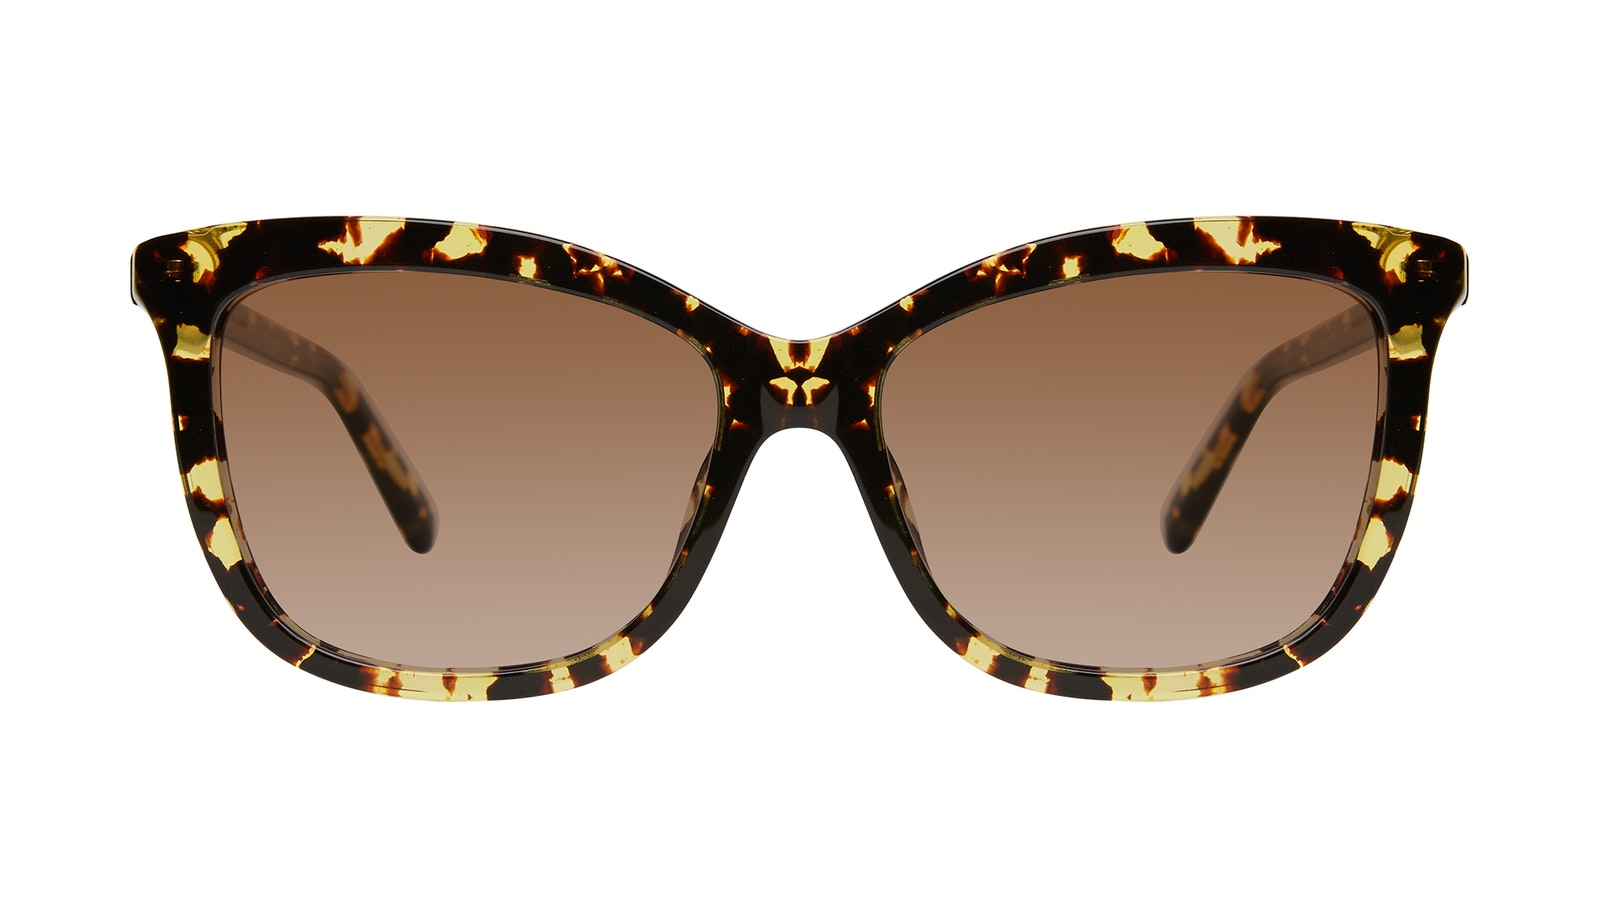 Affordable Fashion Glasses Cat Eye Sunglasses Women Paparazzi Gold Flake